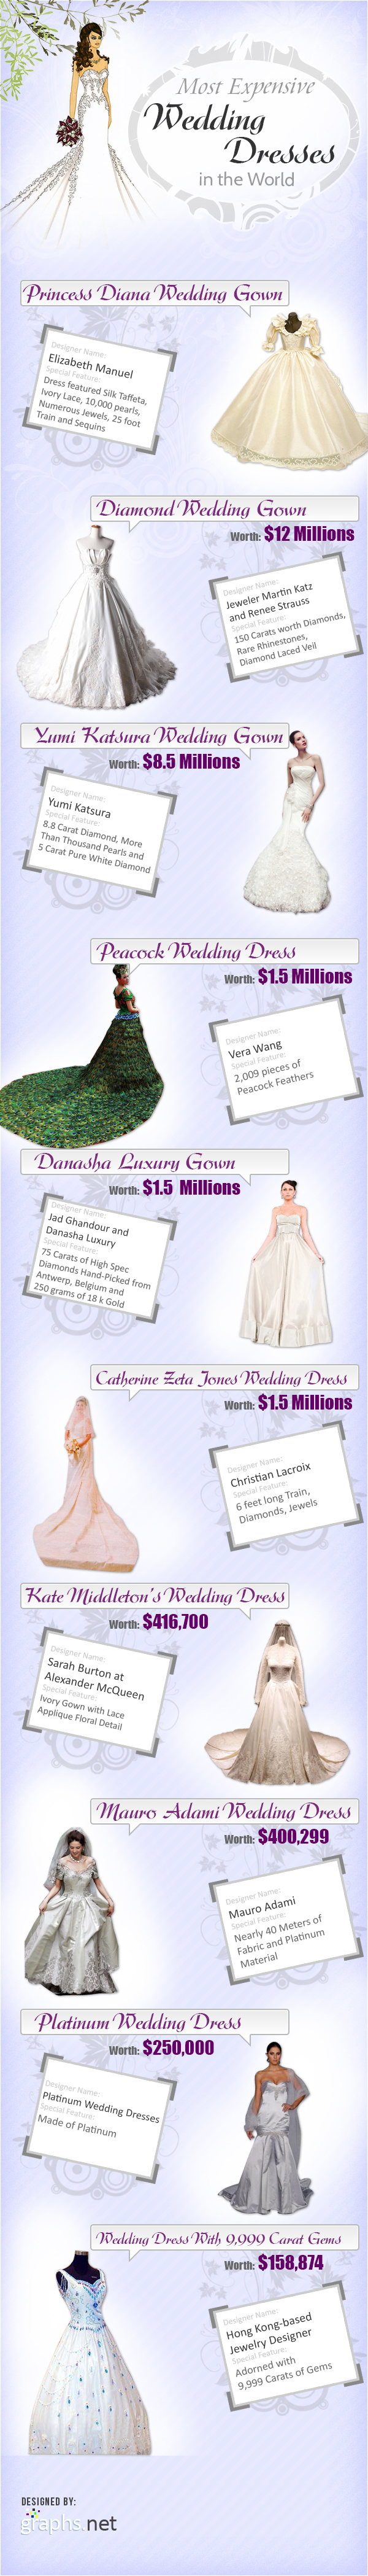 Most-Expensive-Wedding-Dresses-in-the-World